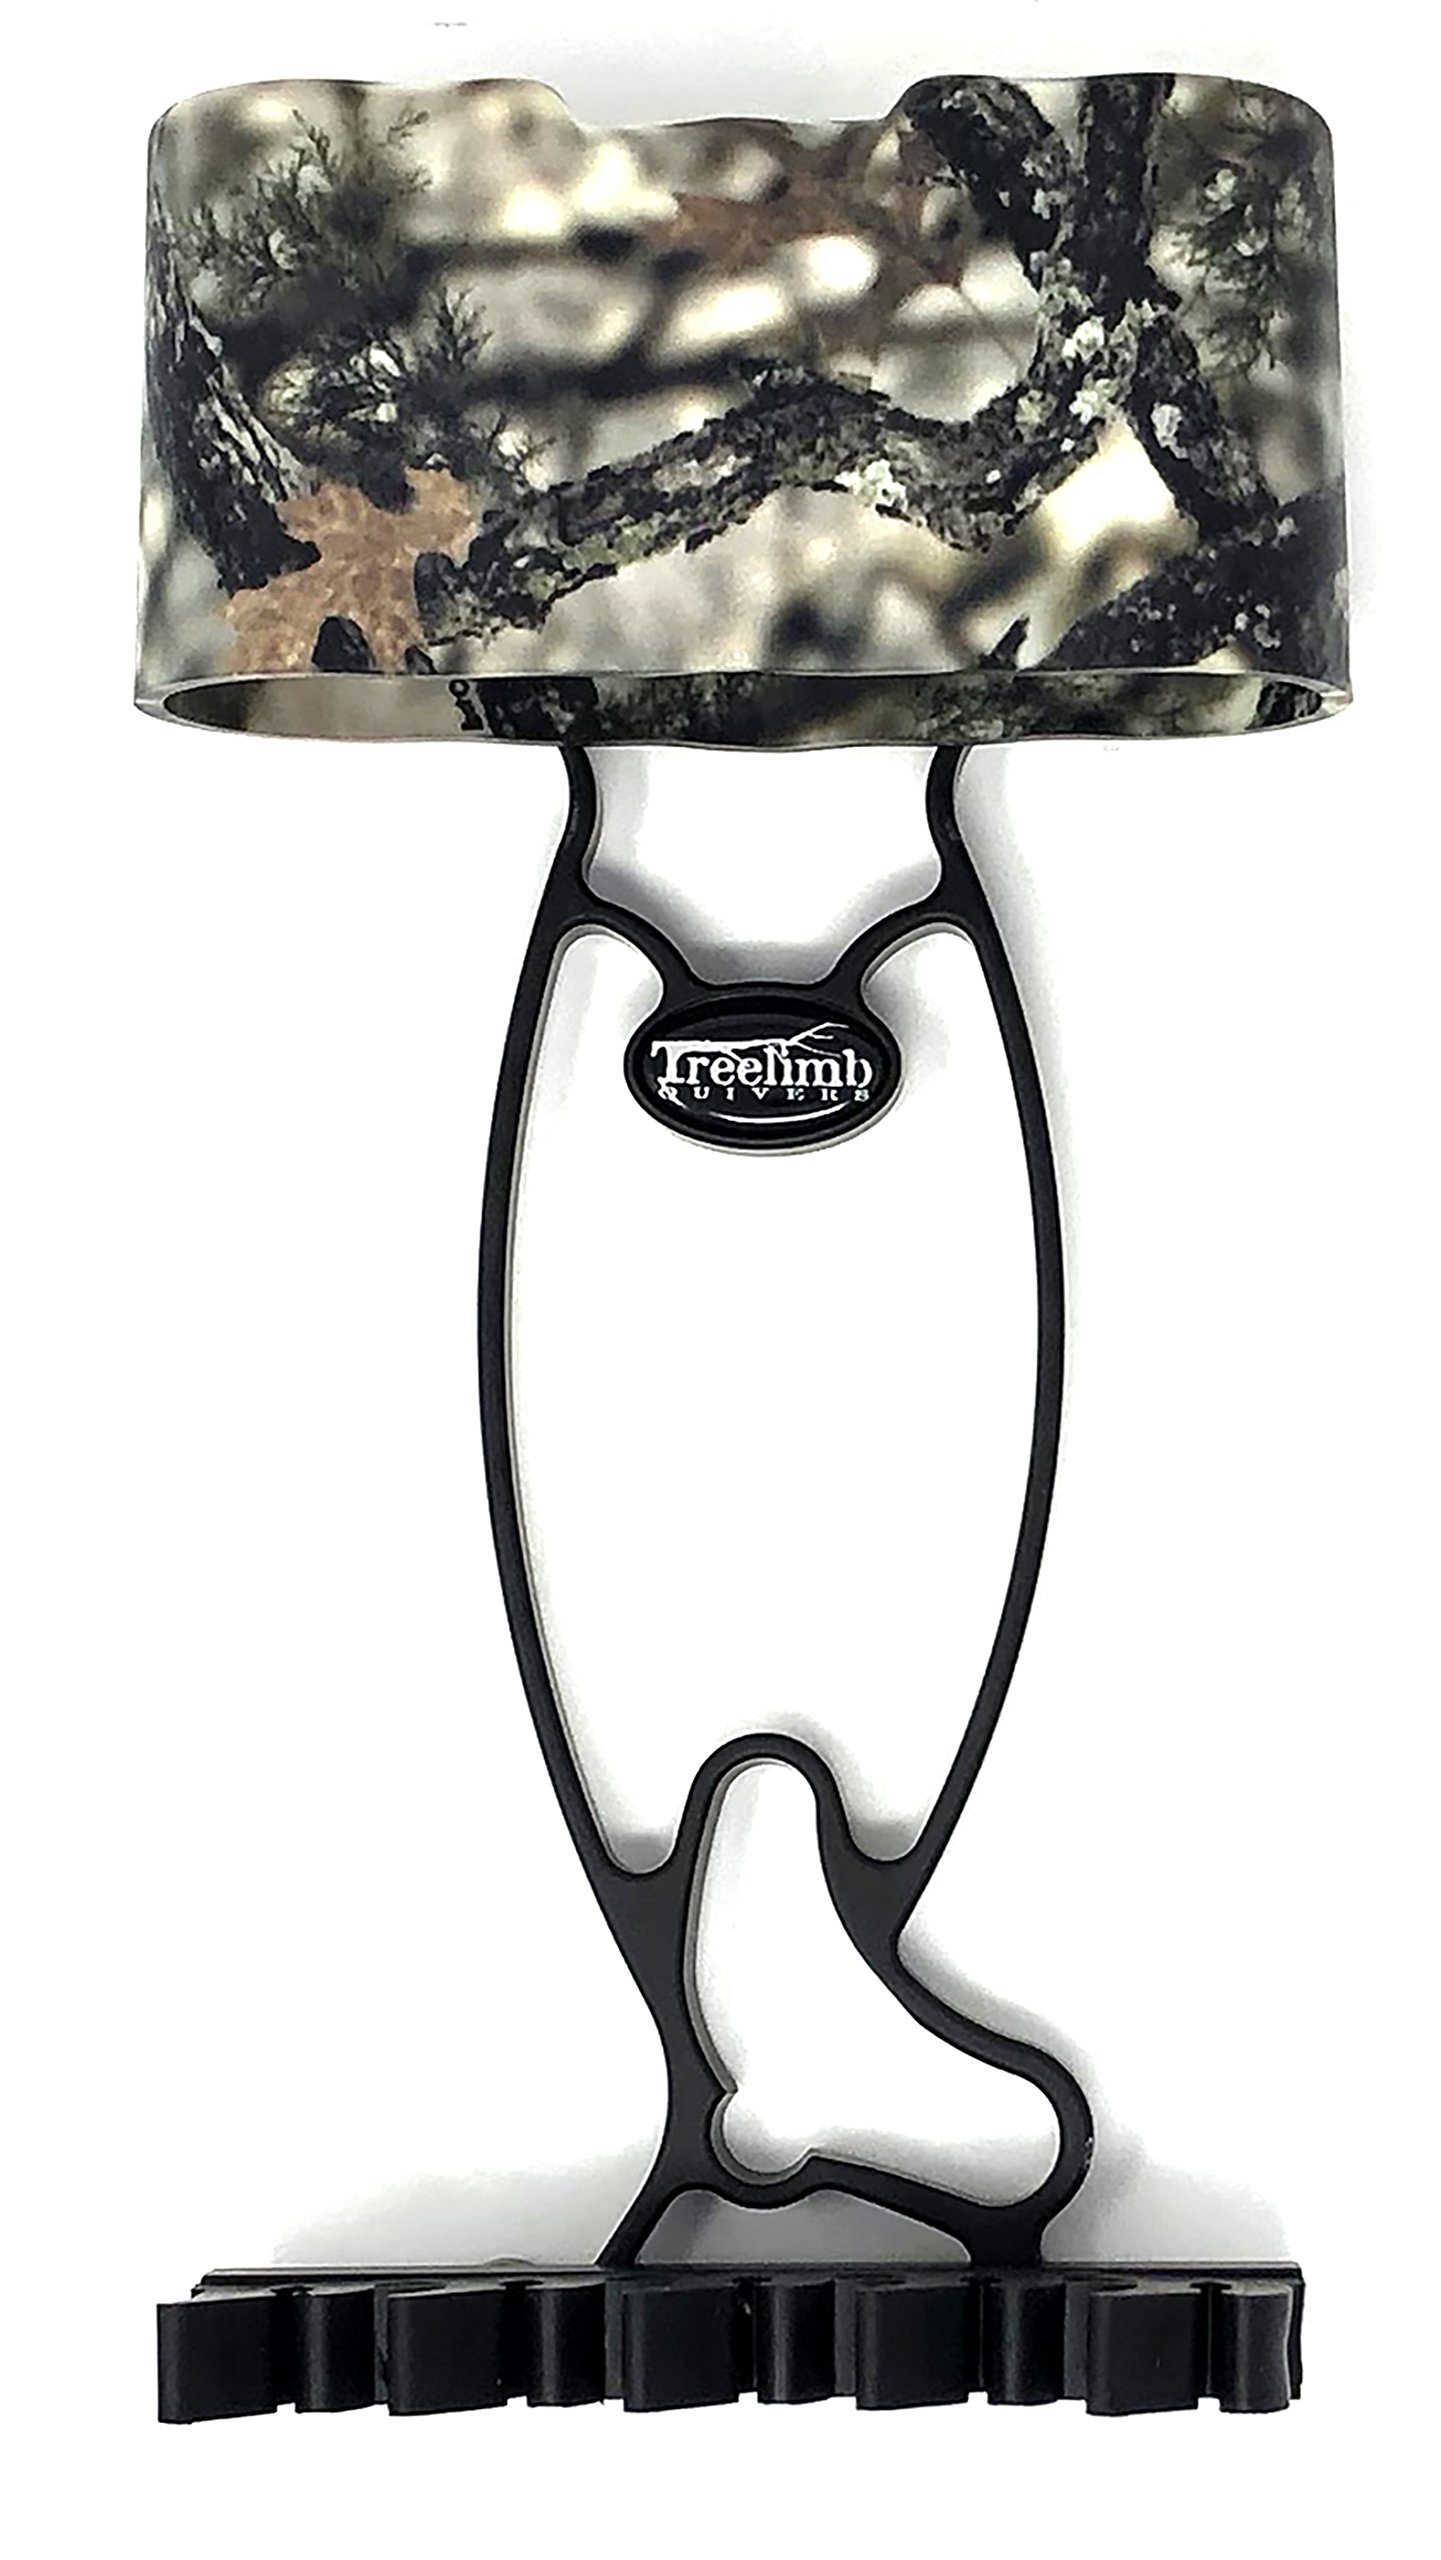 Treelimb Quivers 5 Arrow Premium Compound Bow Archery Quiver – Aluminum Frame – Features a Patented Broadhead Capture System & Tension Locking Mounting System (Lost Camo XD)